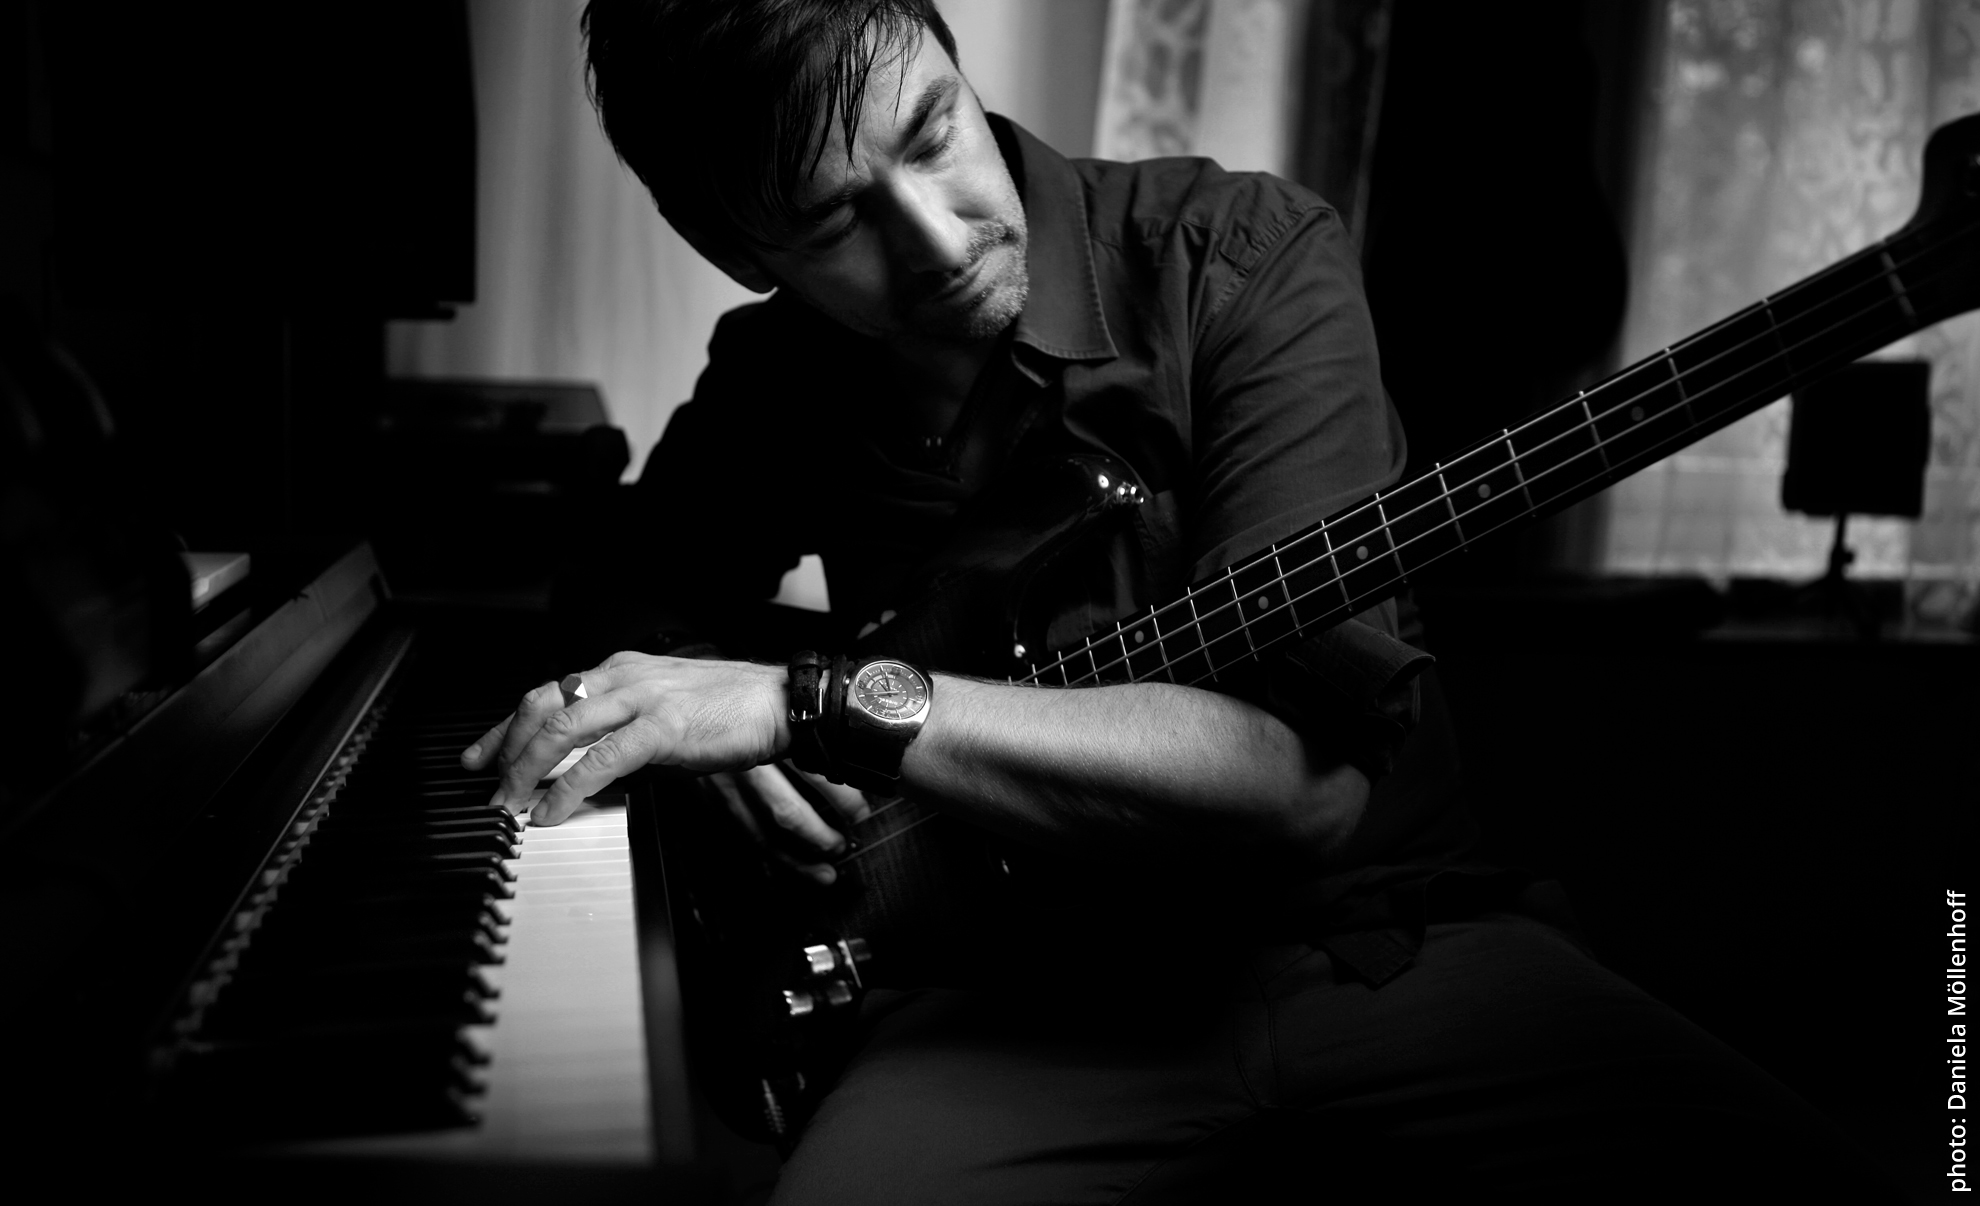 David Alleckna - bassist, producer, composer, musician, Hamburg